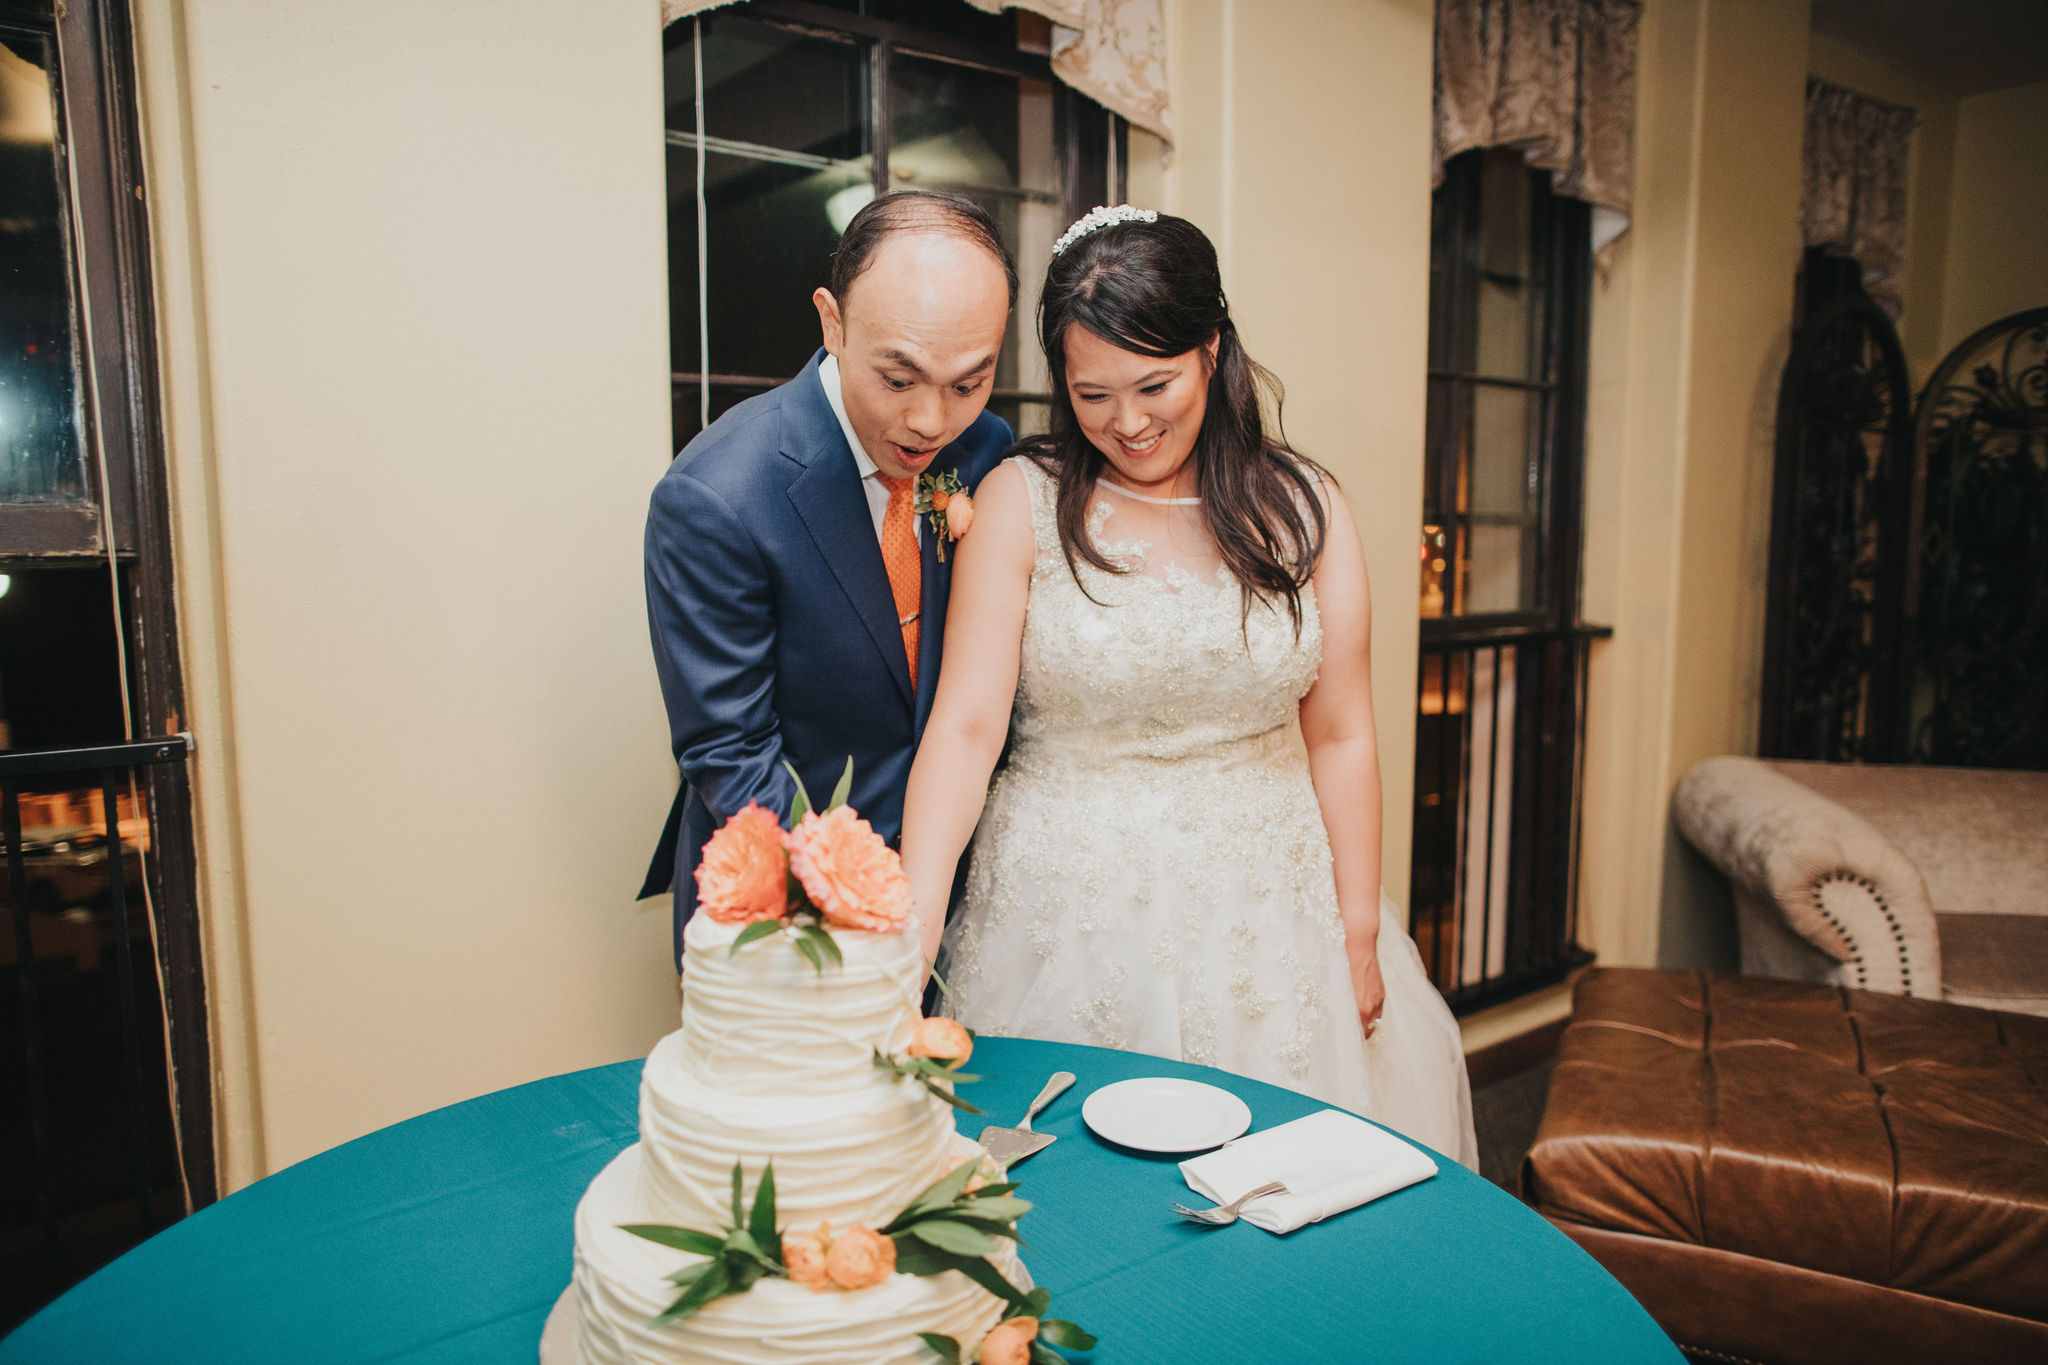 Cake Cutting | Redondo Beach